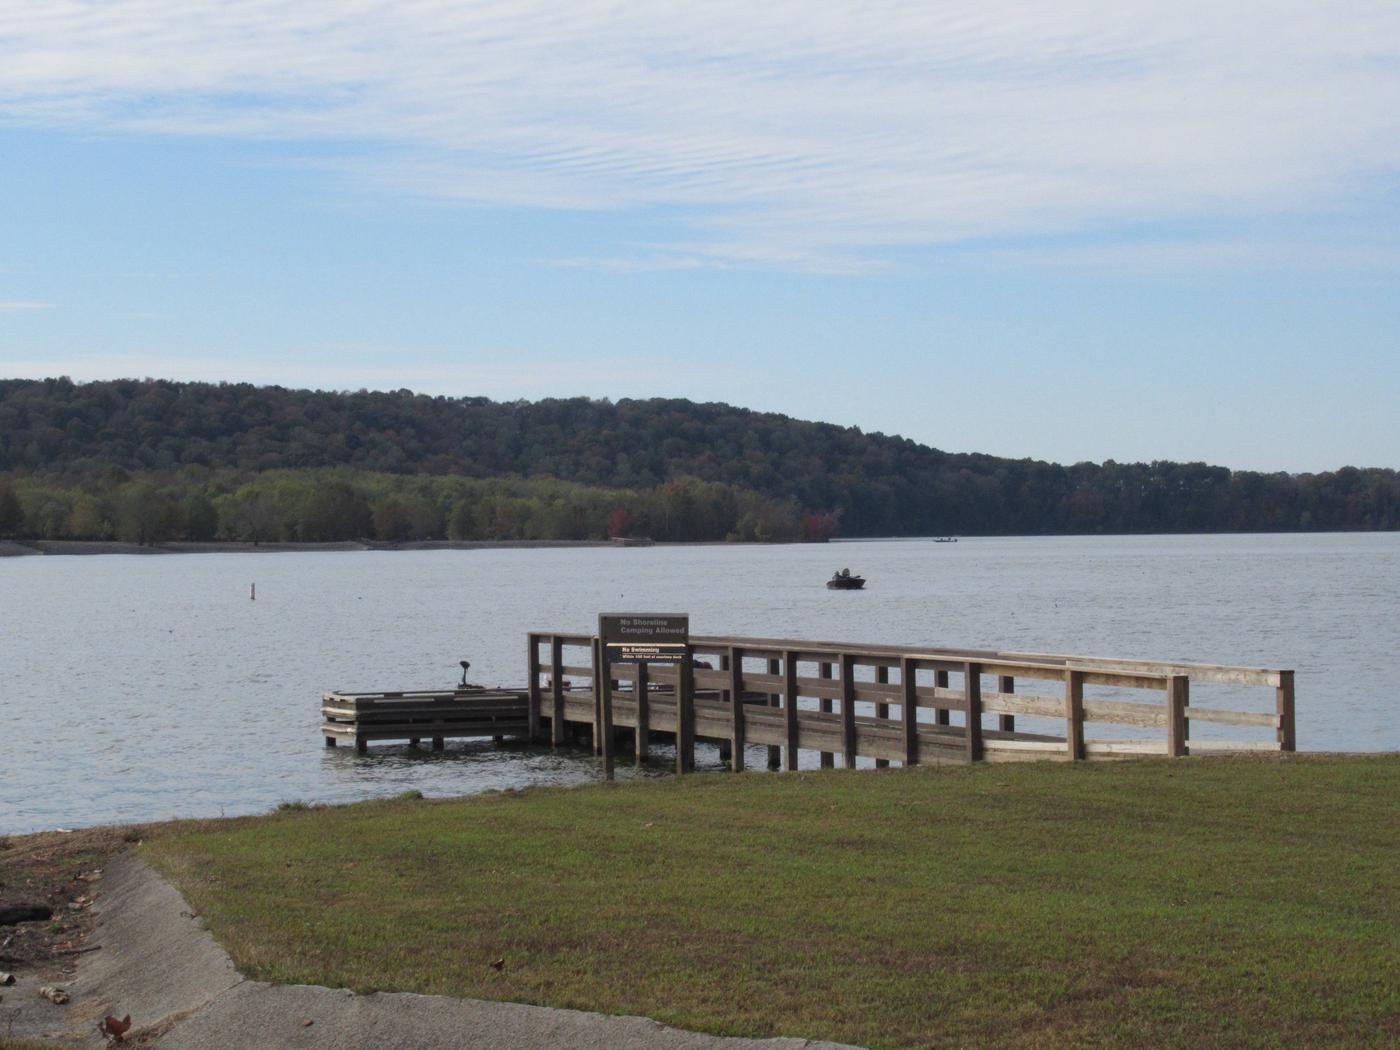 Smith Ridge Courtesy DockCourtesy Dock located at the Smith Ridge boat ramp, less than 1/2 mile from the campground